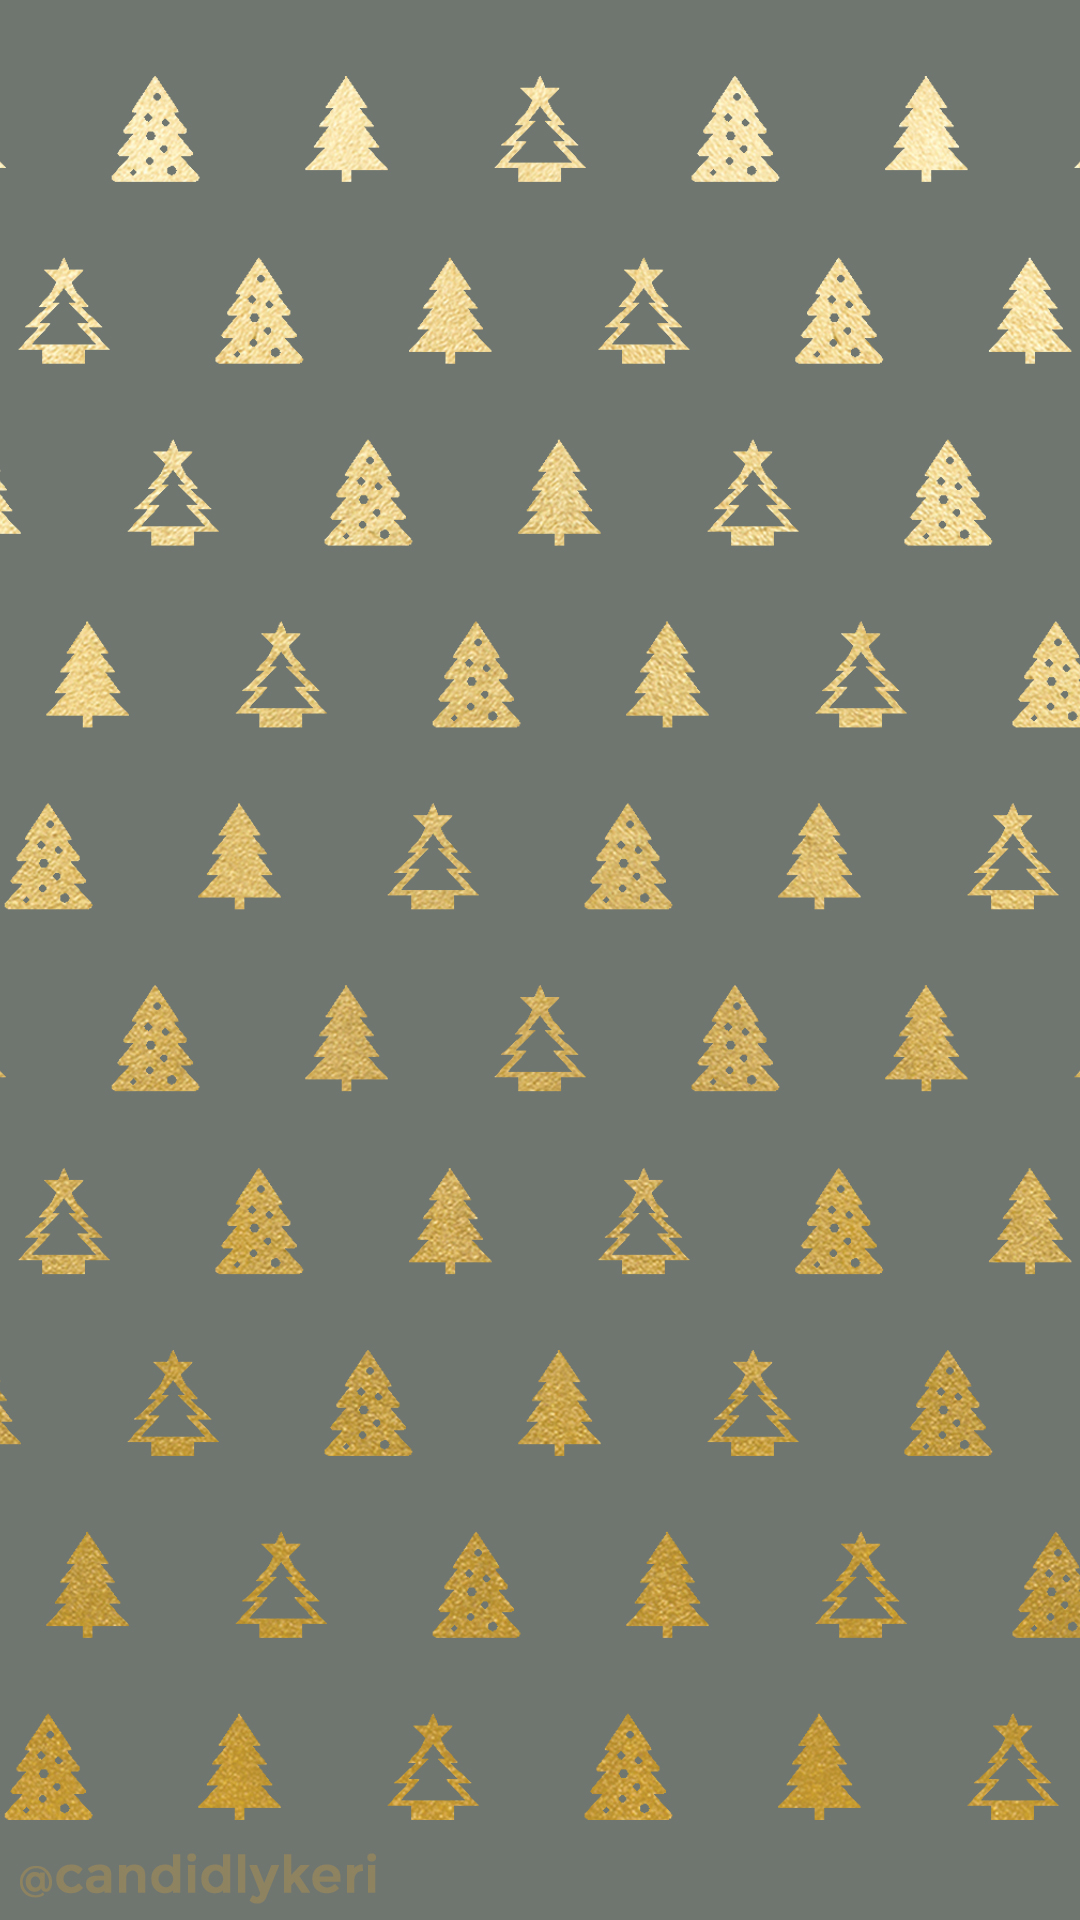 Christmas-tree-gold-foil-green-background-you-can-download-for-free-on-the-blog-For-any-d-wallpaper-wpc5803478